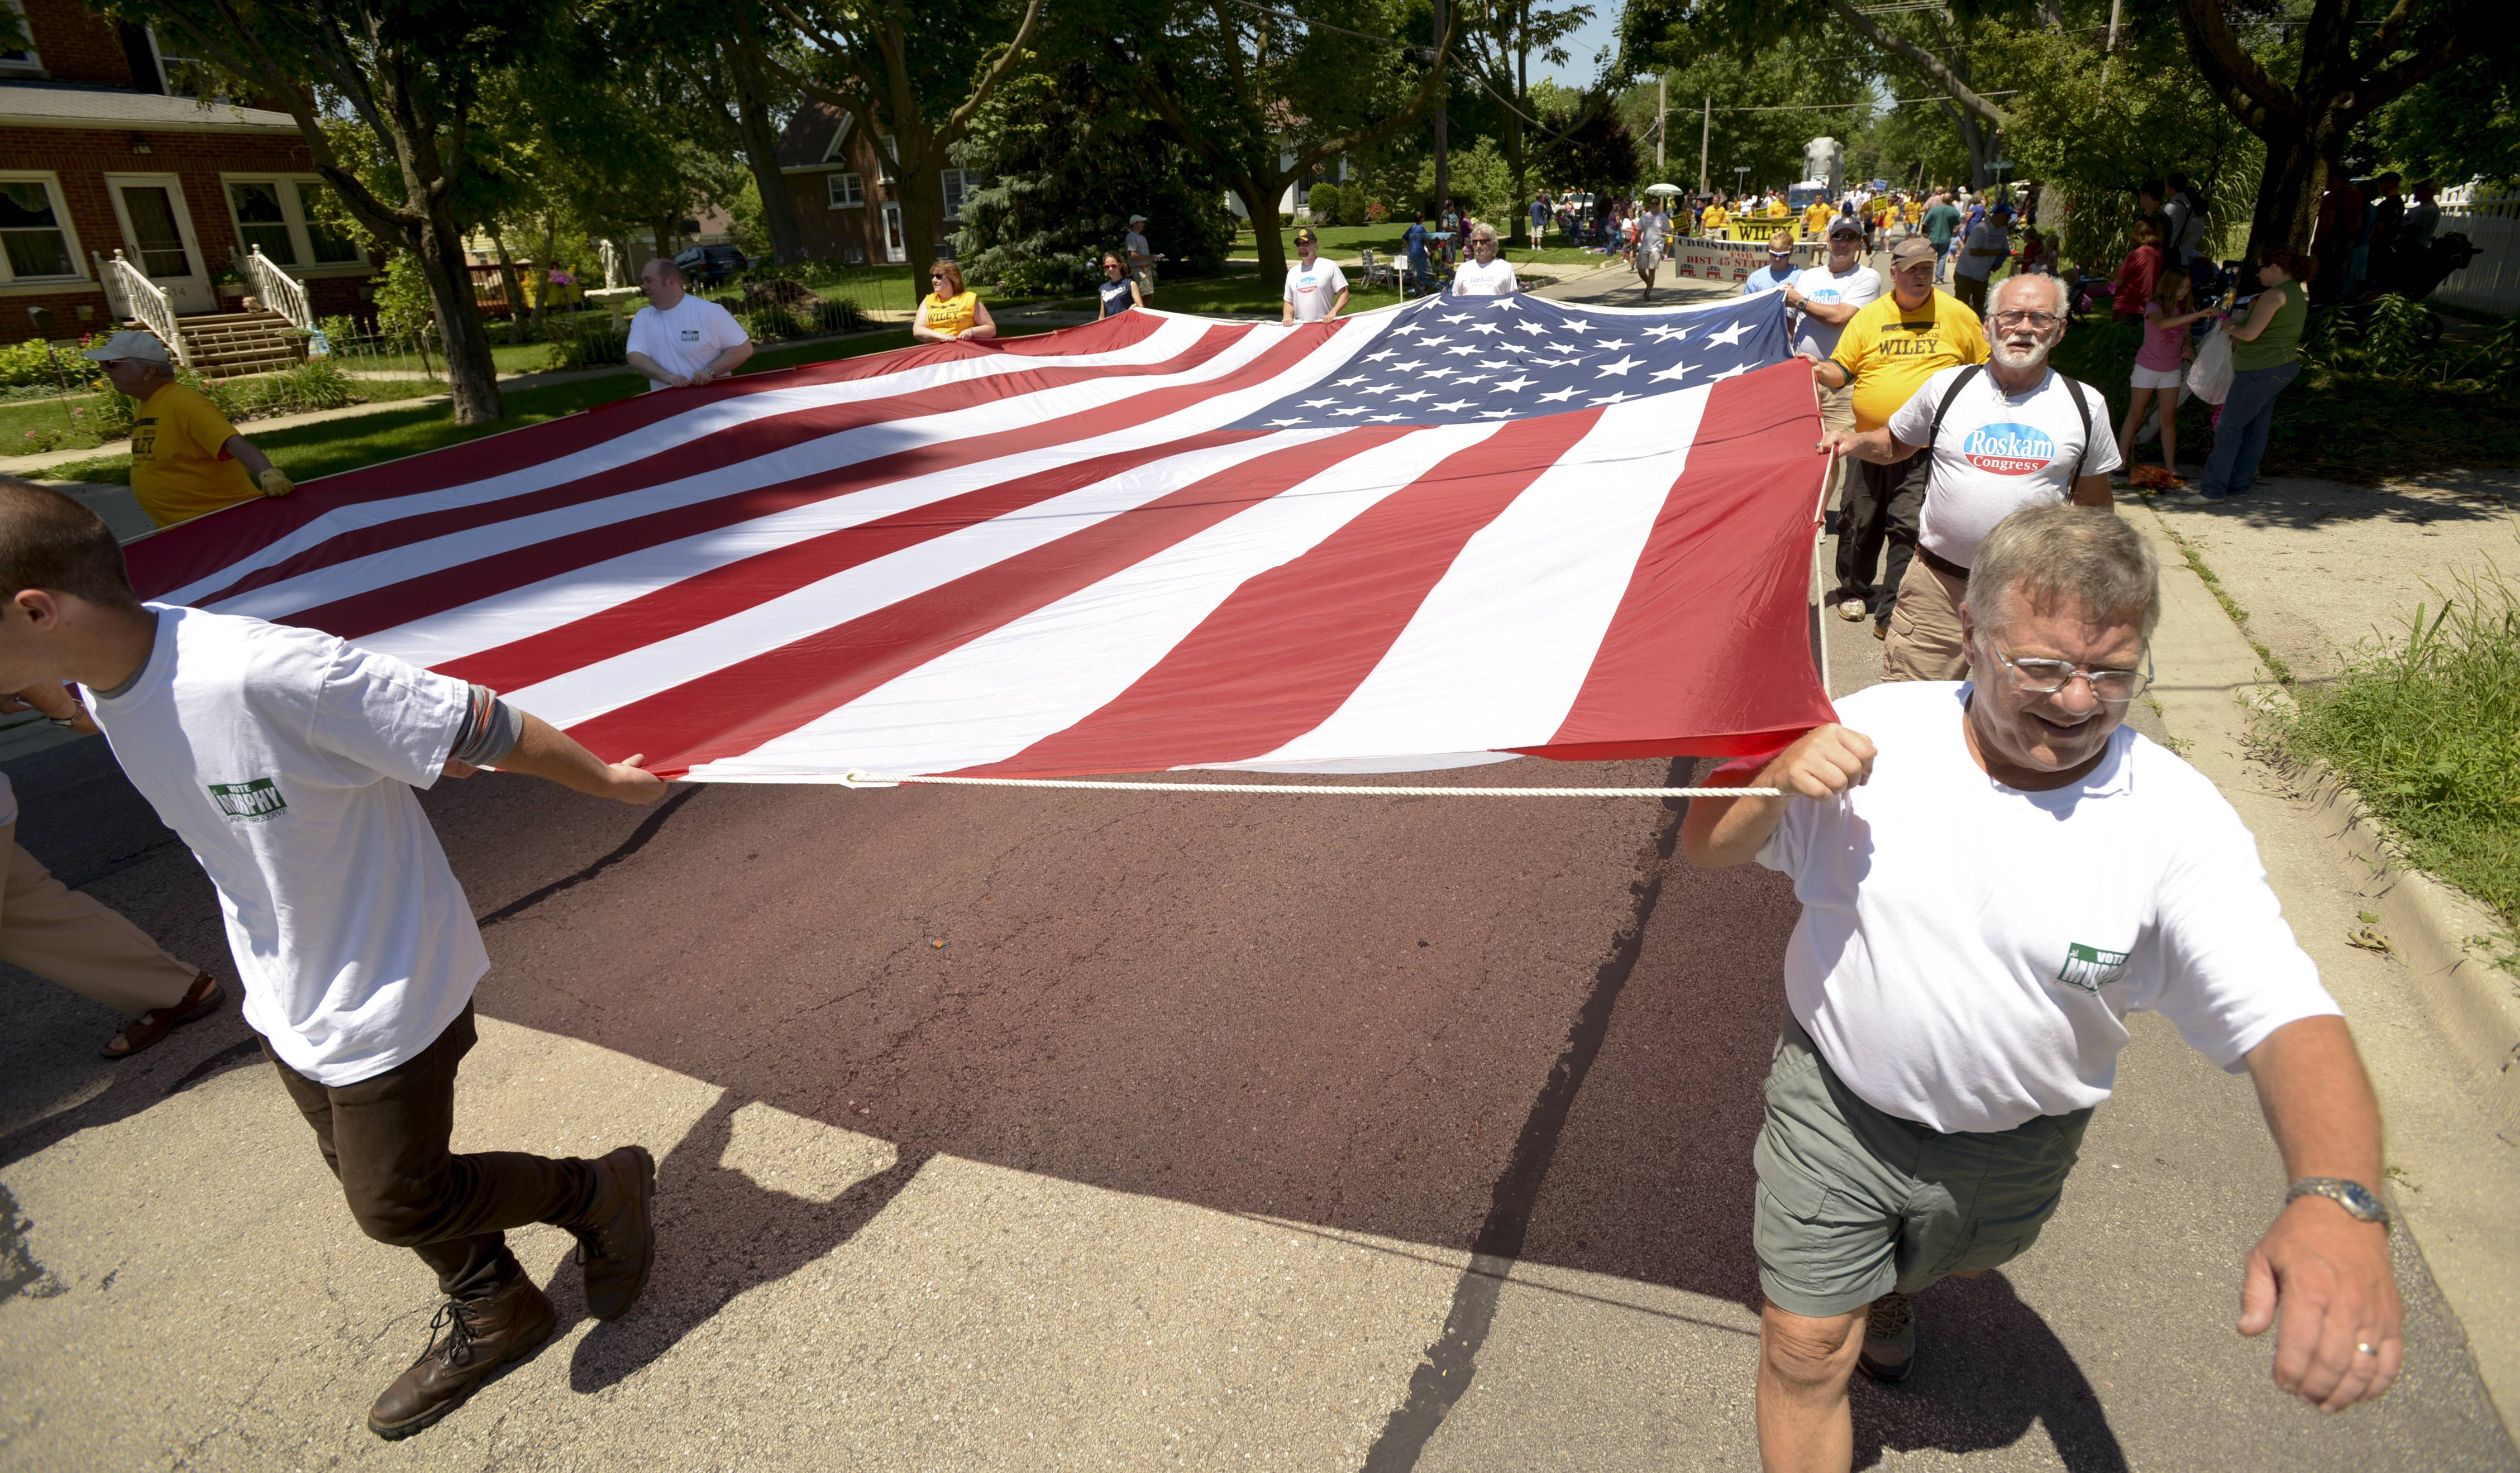 A huge American flag is carried Sunday in the West Chicago Railroad Days Parade by supporters of area Republican candidates.